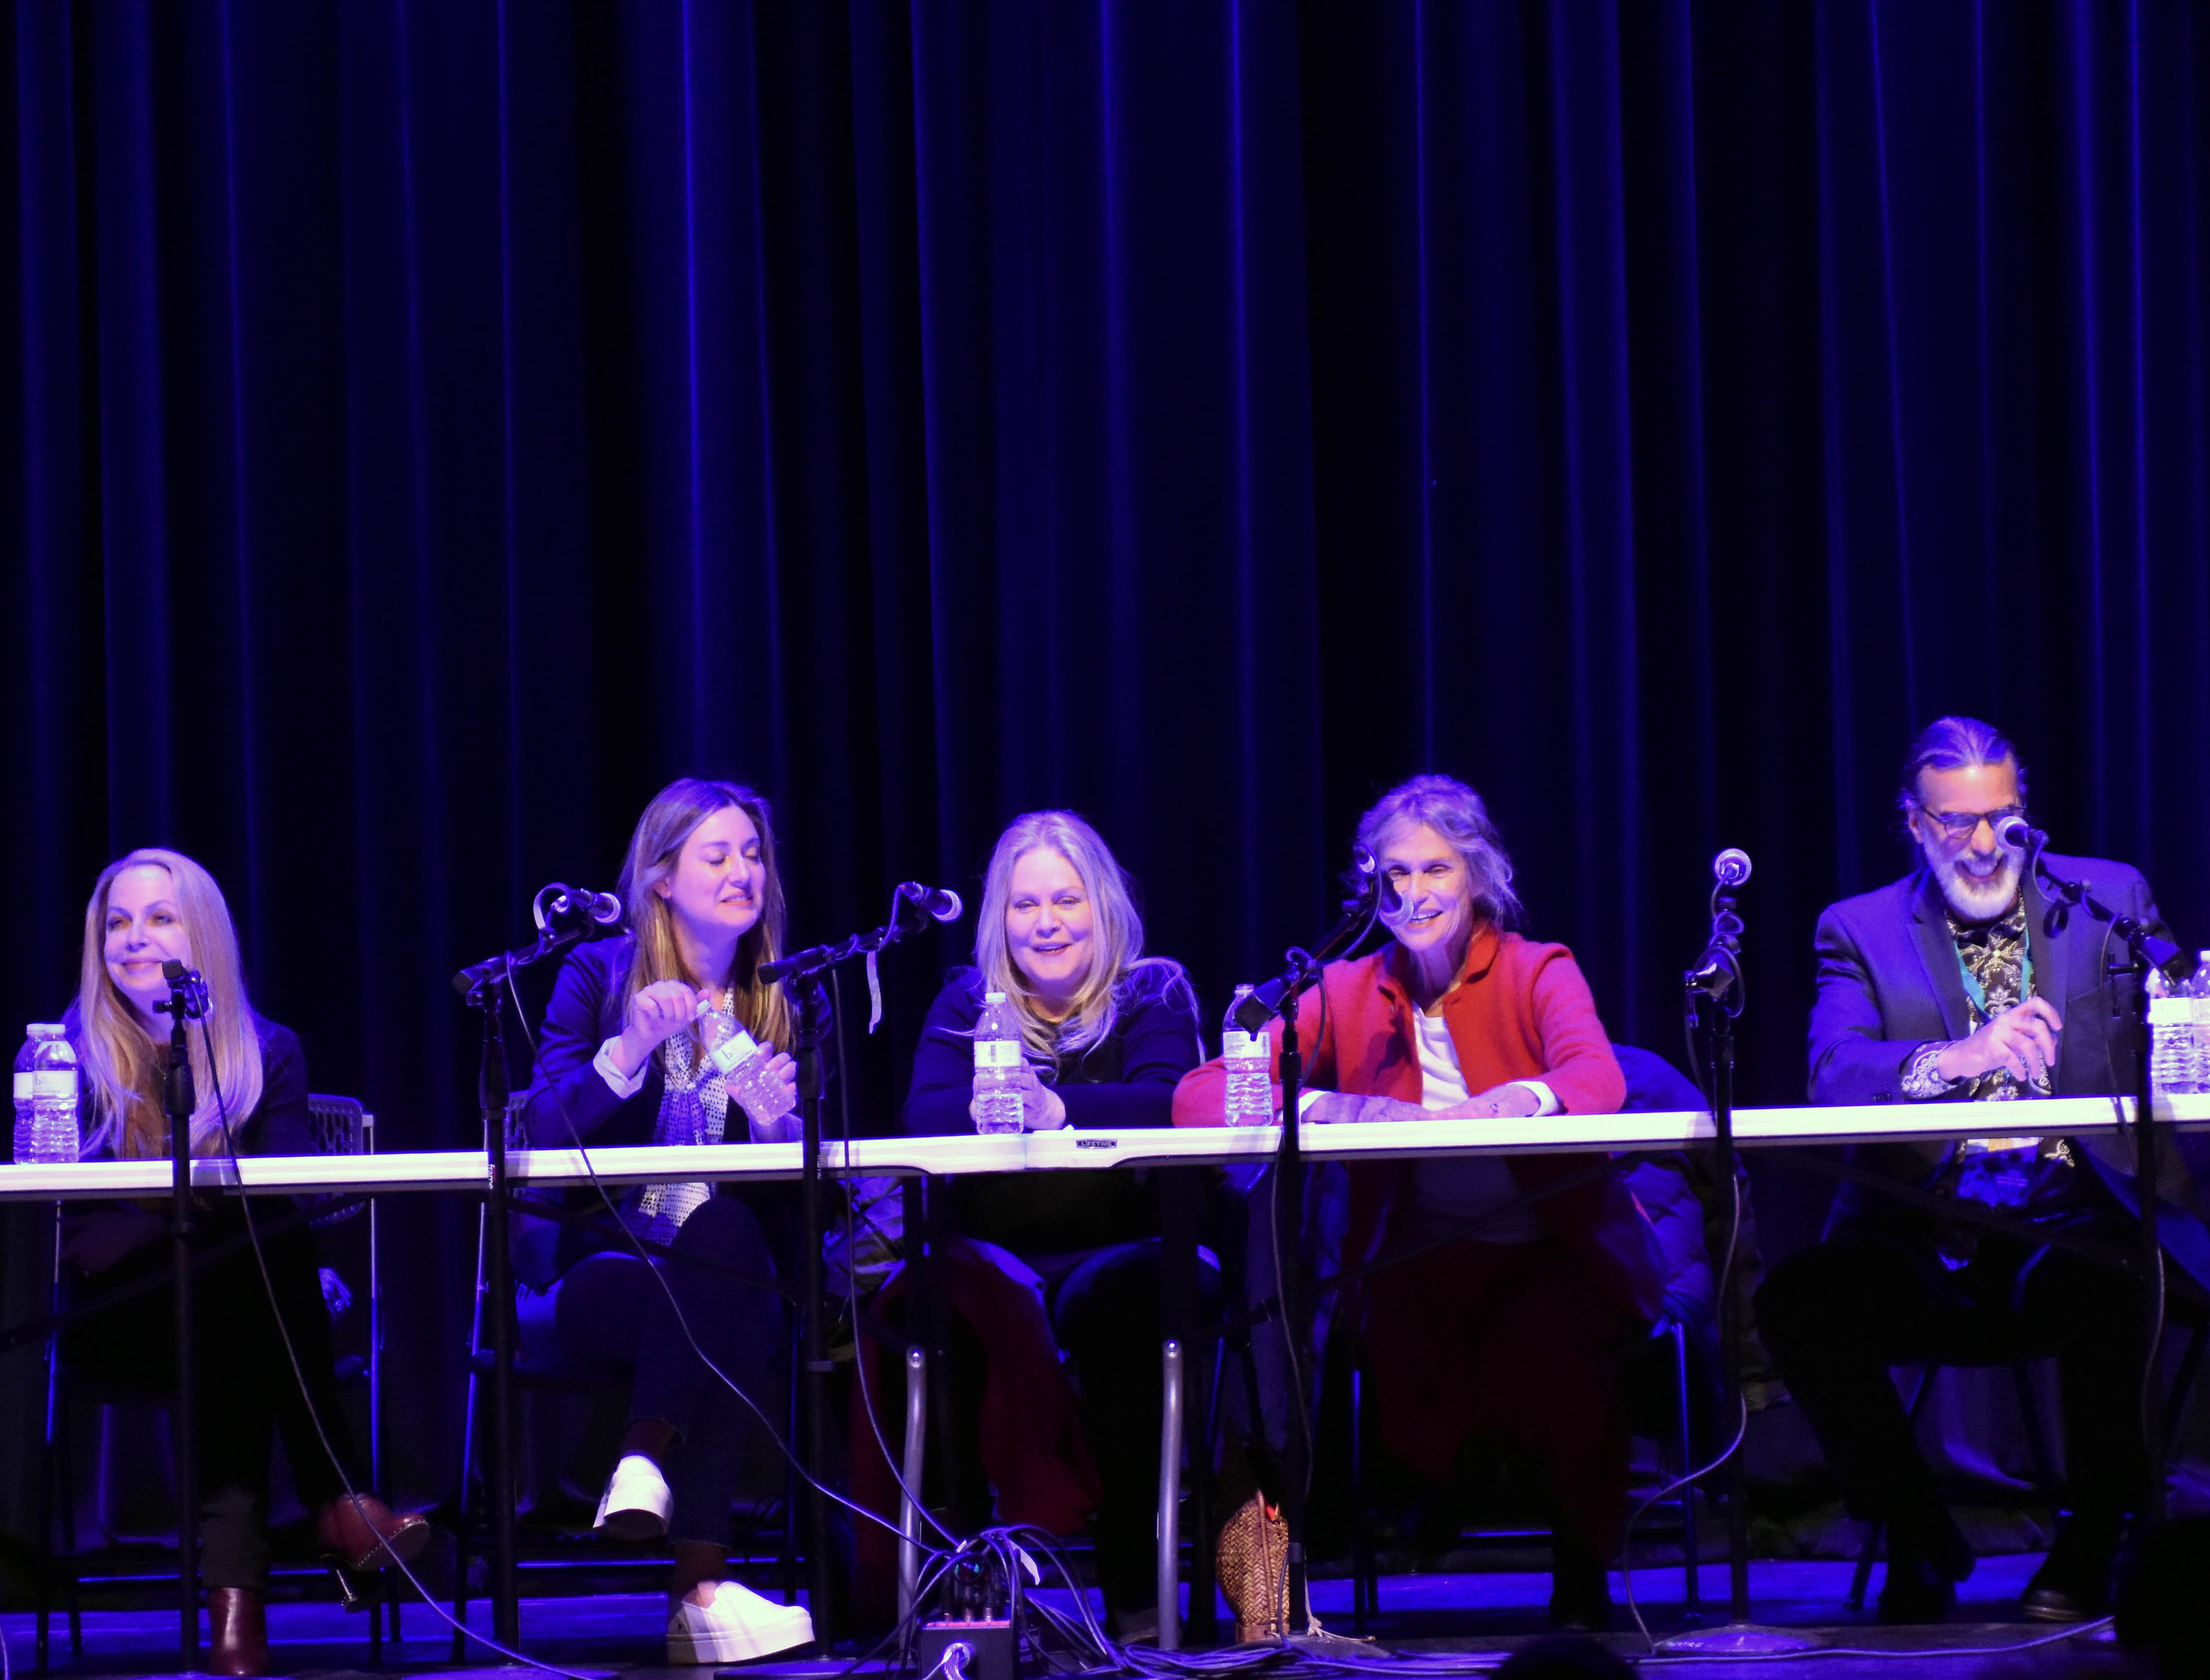 """From left, costume designer Mary T. Quigley (""""The Big Bang Theory,"""" """"Roseanne""""), actress Zoe Perry (""""Young Sheldon""""), actress Beverly D'Angelo (""""National Lampoon's Vacation"""" movies), actress Lauren Hutton (""""American Gigolo""""); and producer Don Foster """"Big Bang Theory"""") participate in the """"Making It Work in Hollywood"""" panel Saturday, Feb. 23, 2019, at the Rio Grande Theatre, part of the Las Cruces International Film Festival."""